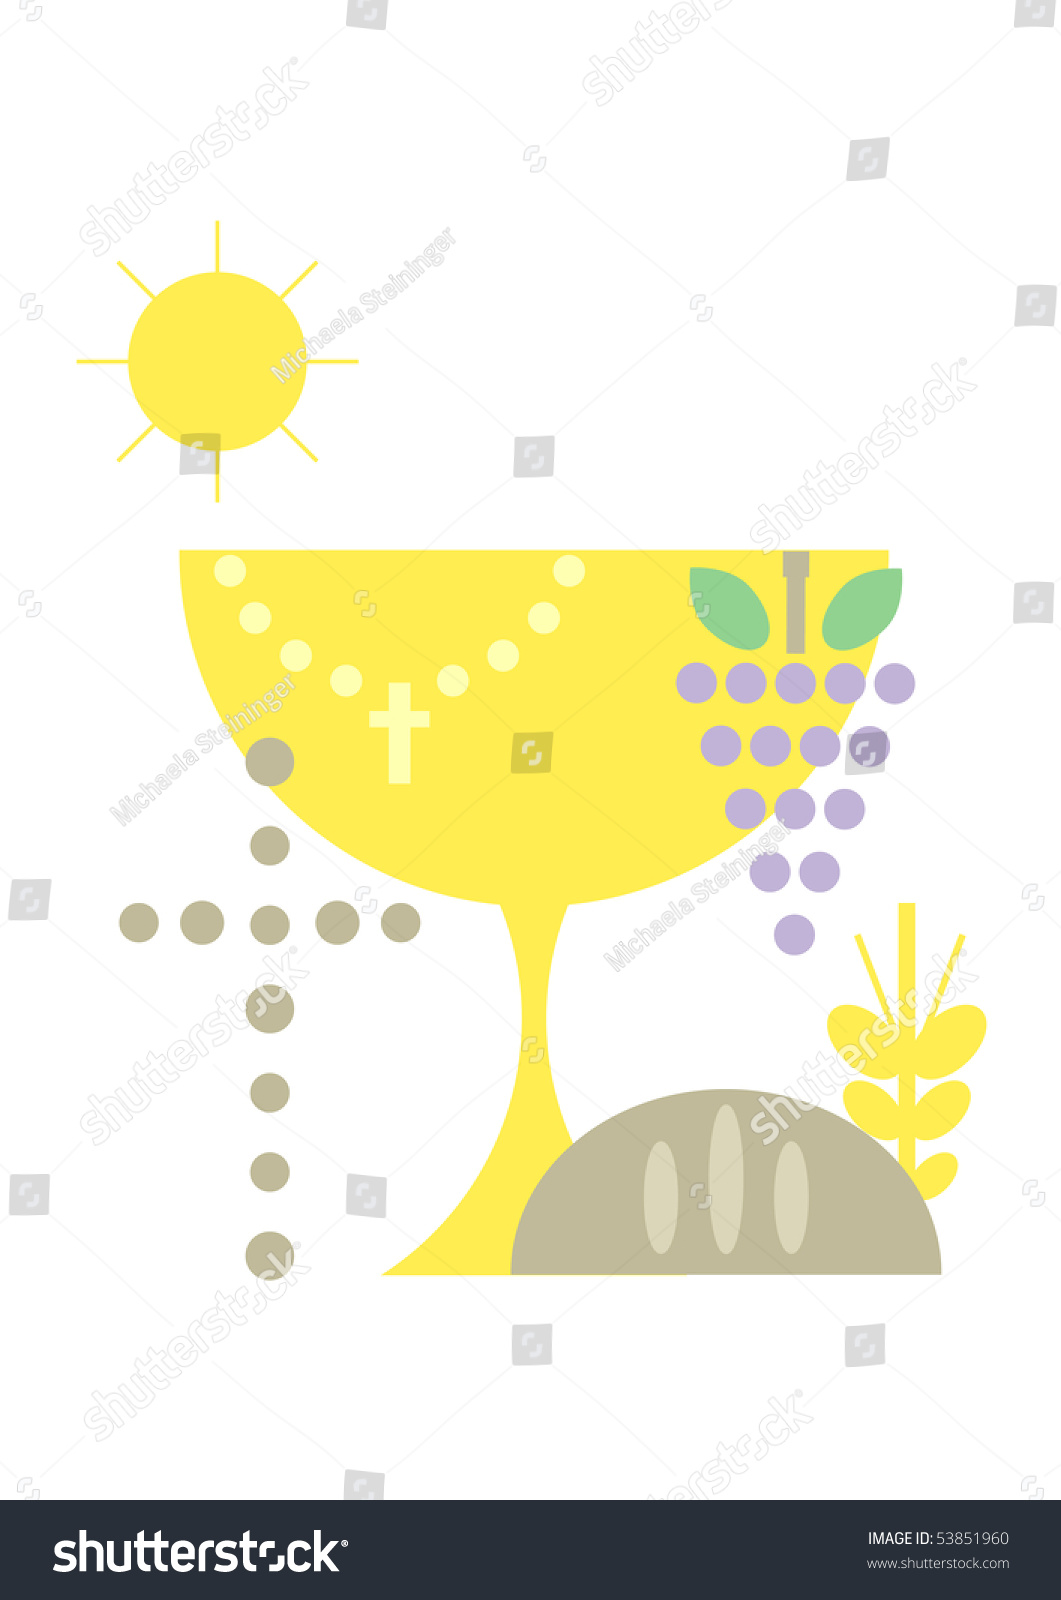 Chalice and paten clipart